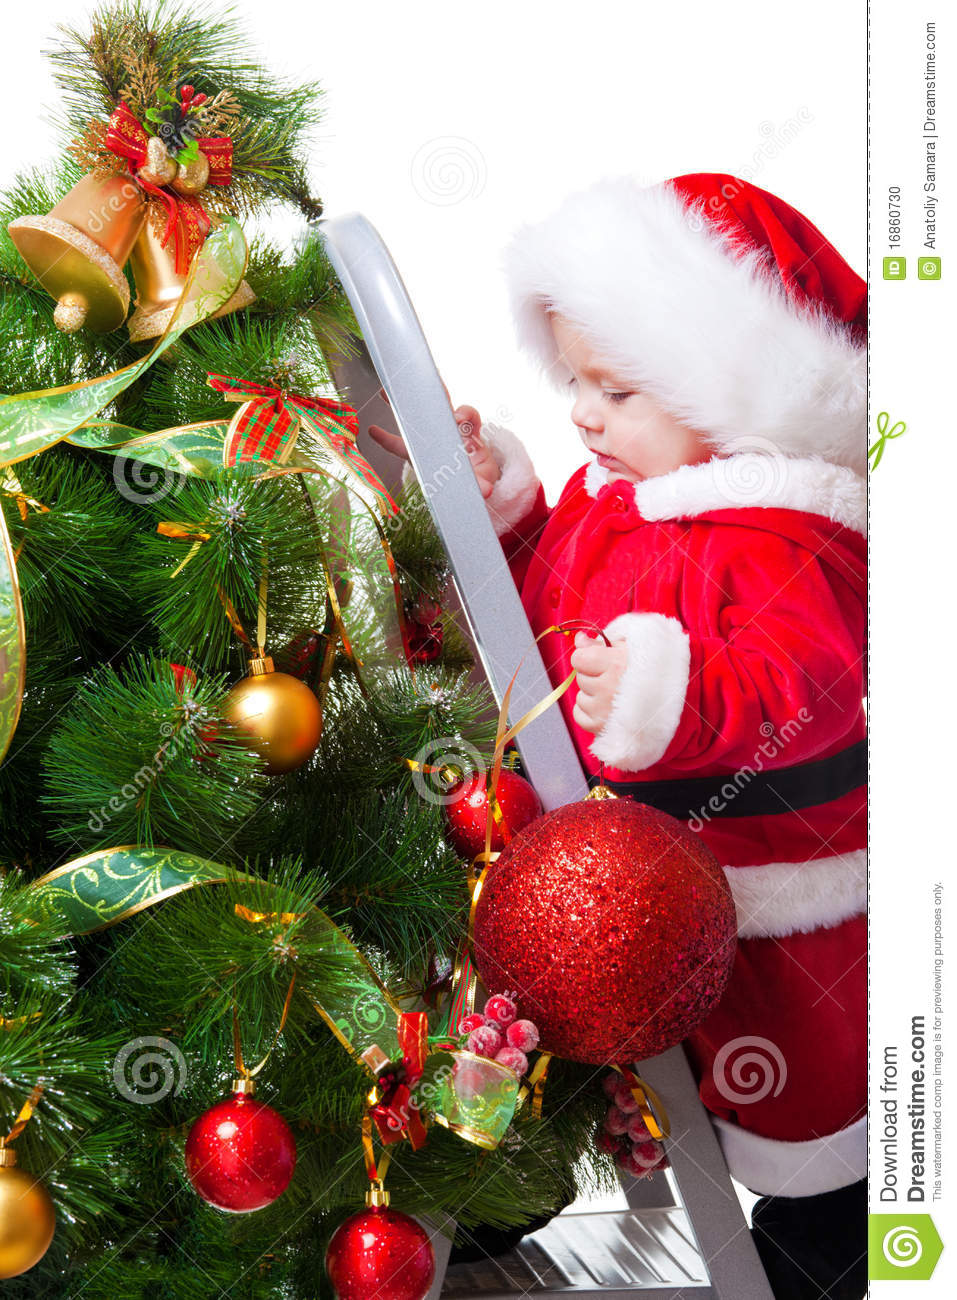 Baby decorating christmas tree stock photo image 16860730 for Baby christmas tree decoration